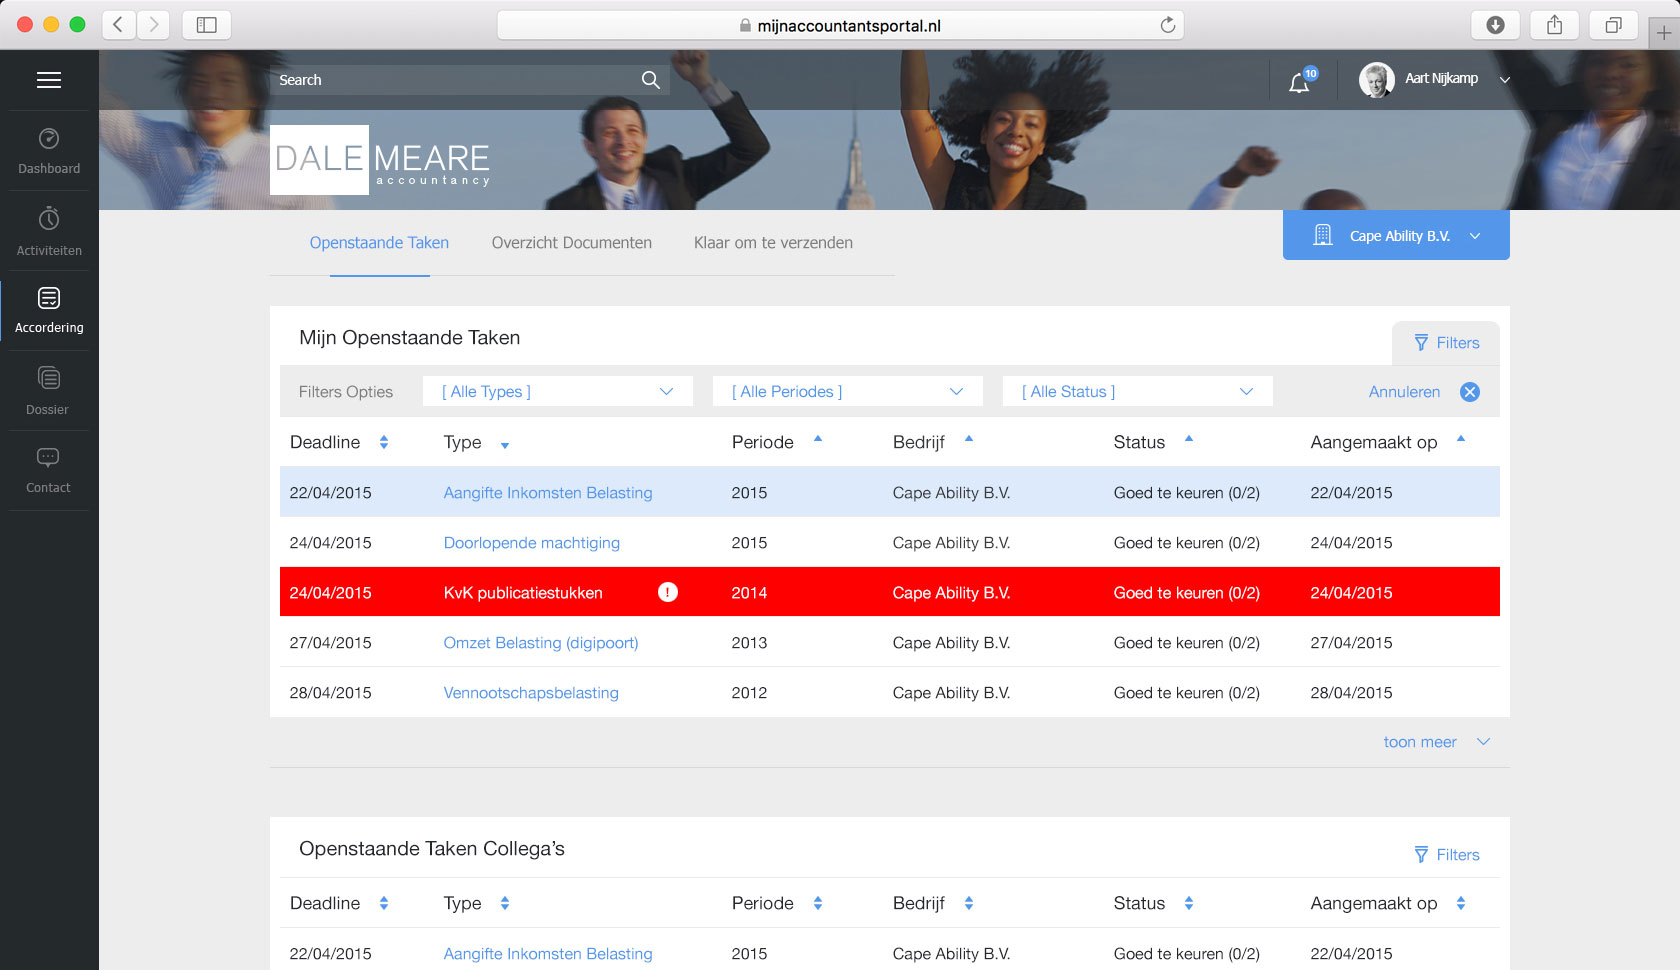 http://antoniomedia.com/uploads/antonio-media-acuity-map-accordering.jpg